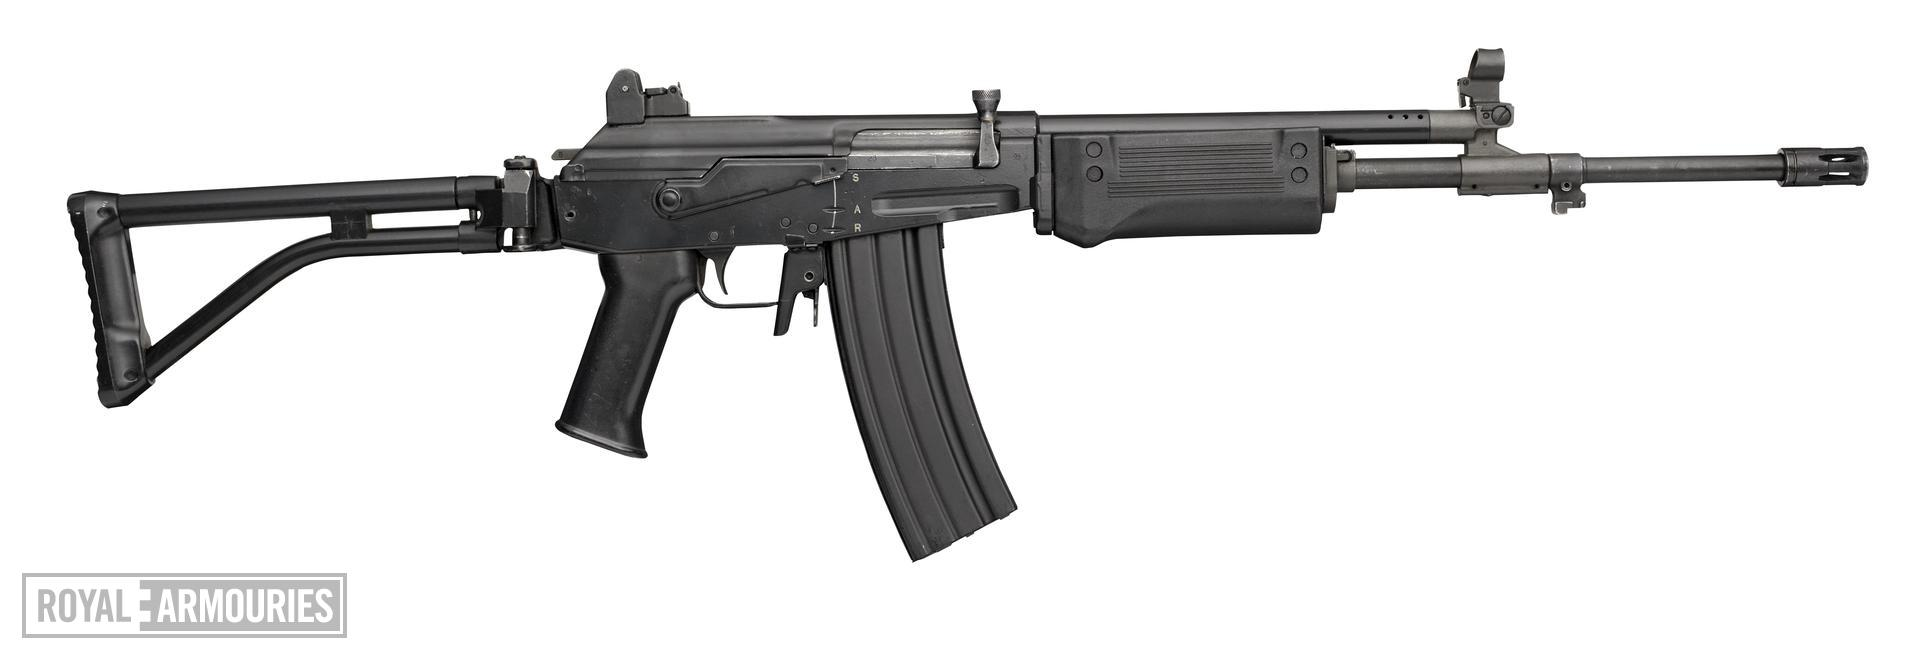 Centrefire automatic rifle - Galil